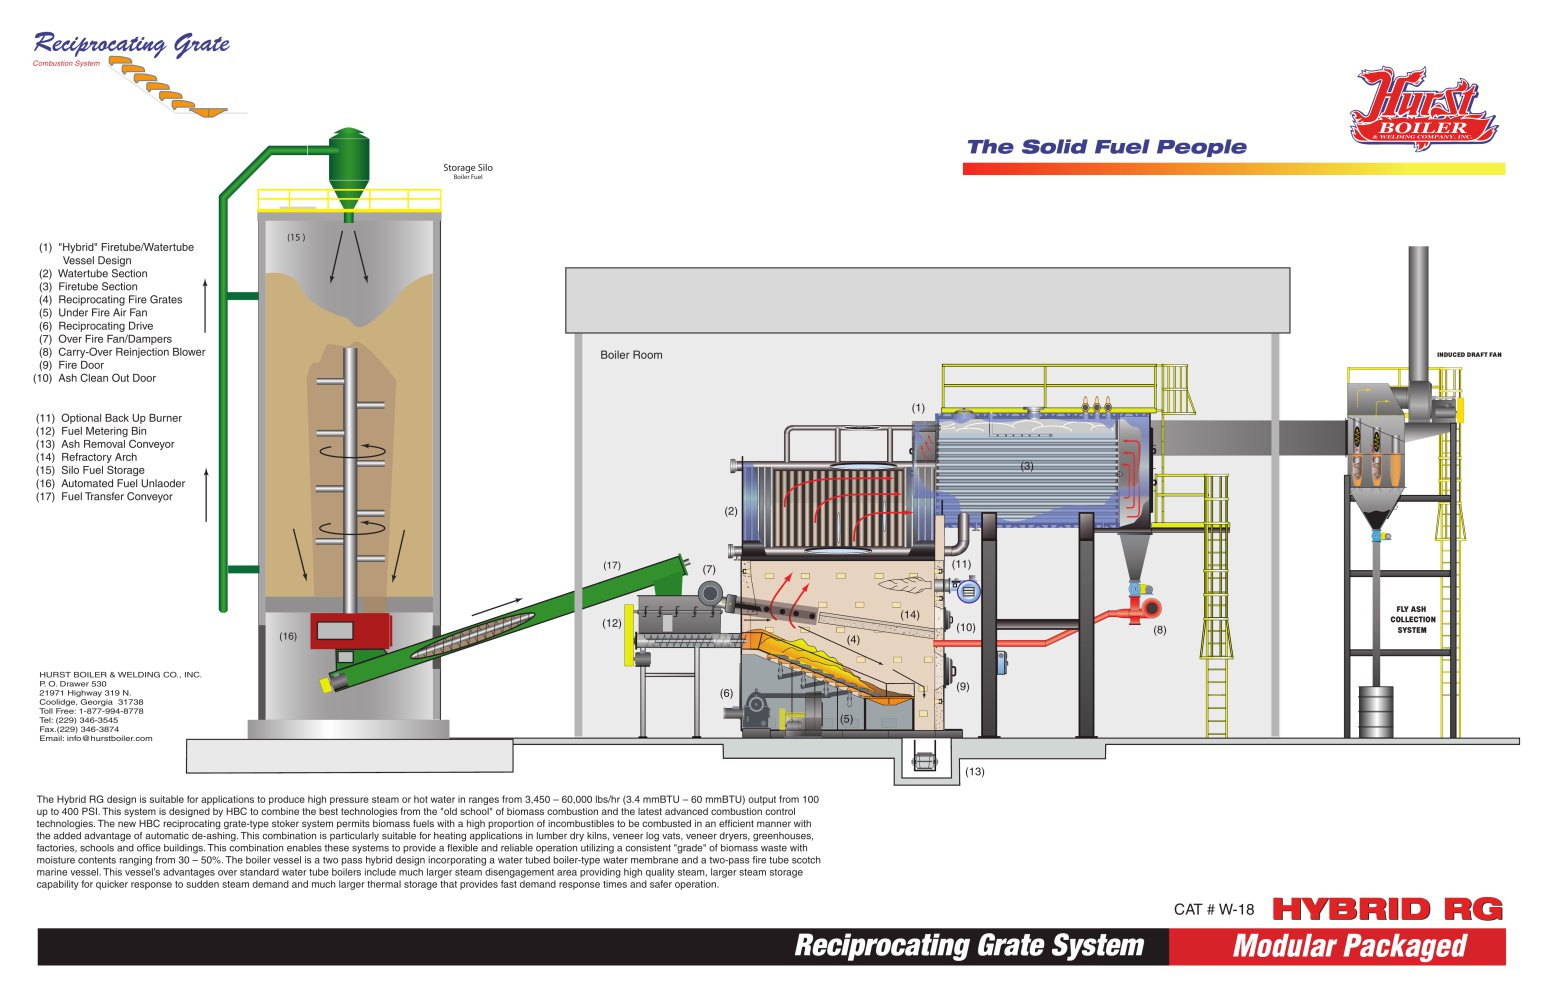 Wood 18 hybrid rg silo hurst boiler welding co inc pdf wood 18 hybrid rg silo 1 1 pages pooptronica